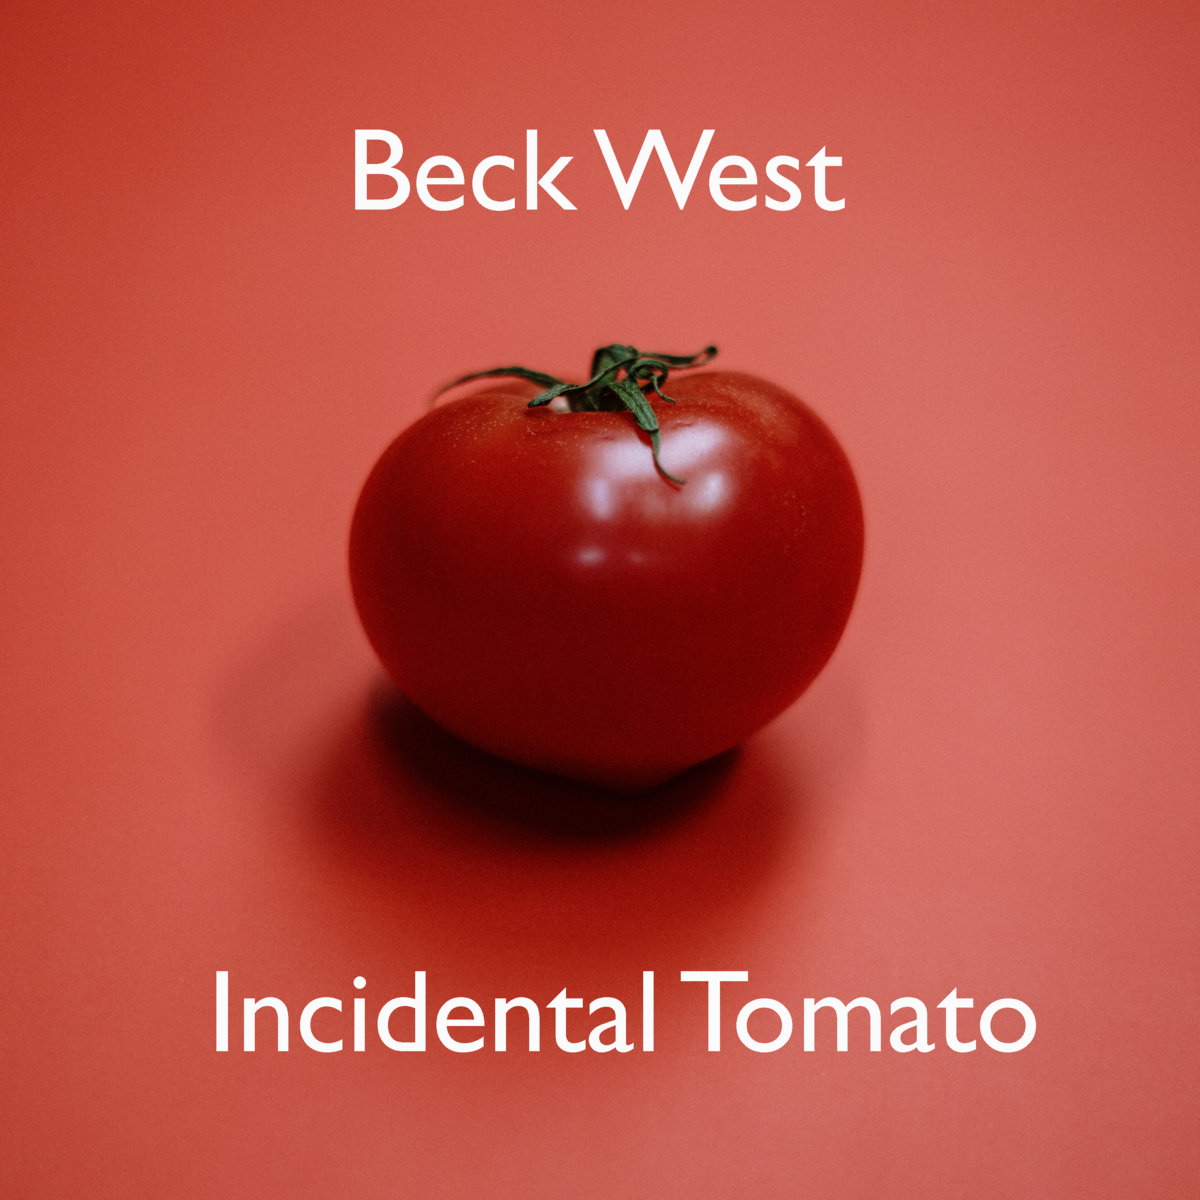 Incidental Tomato by Beck West